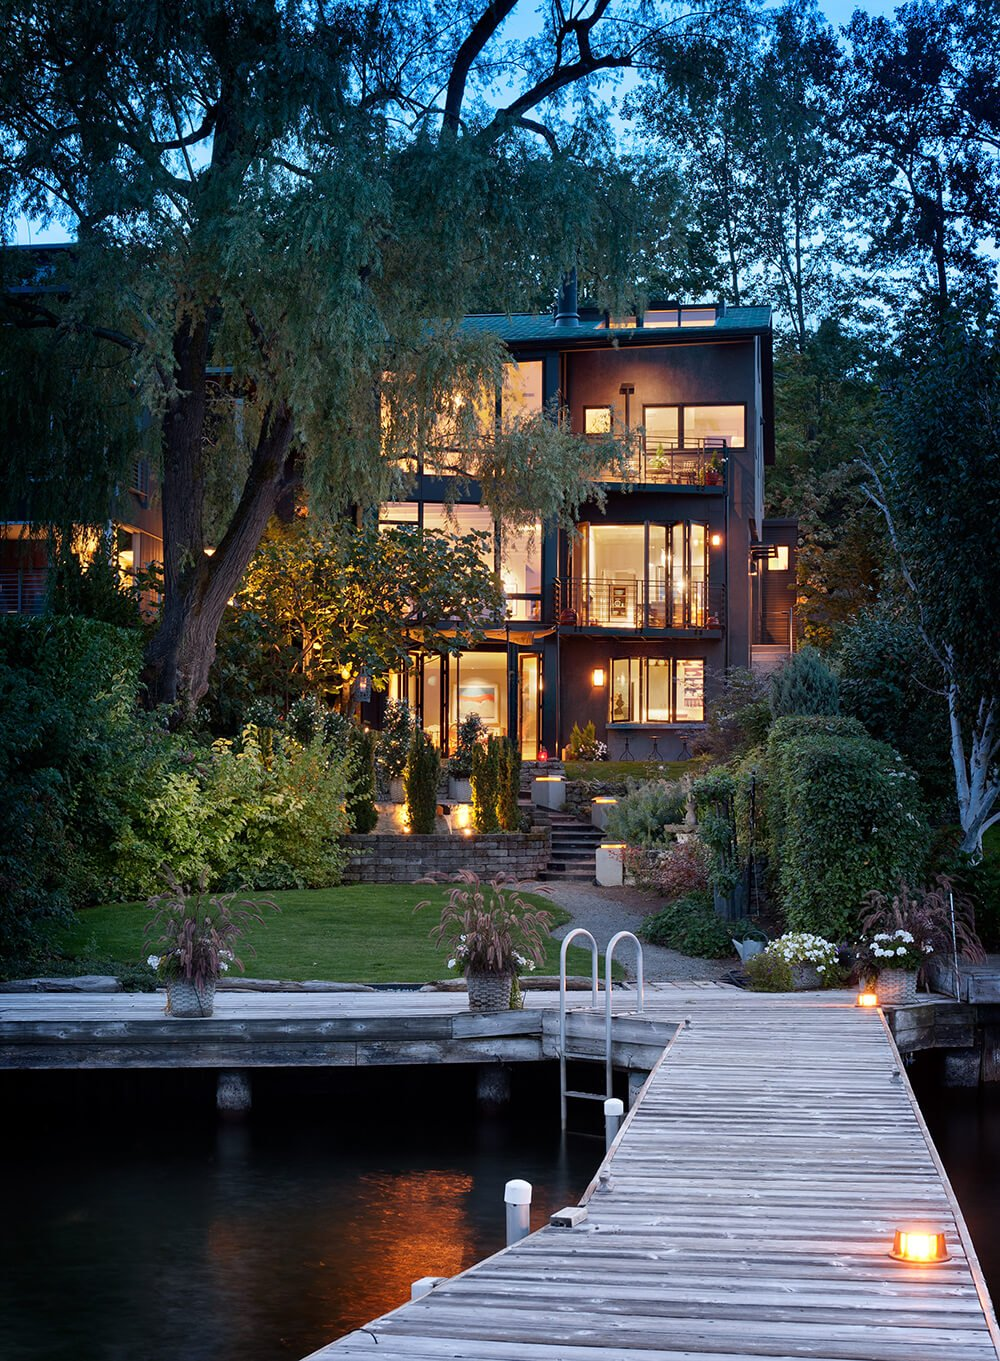 Standing on the far end of the dock, hovering over Lake Washington, we can appreciate the expert balance achieved between sharp edged modernism and a lush environmental sense.